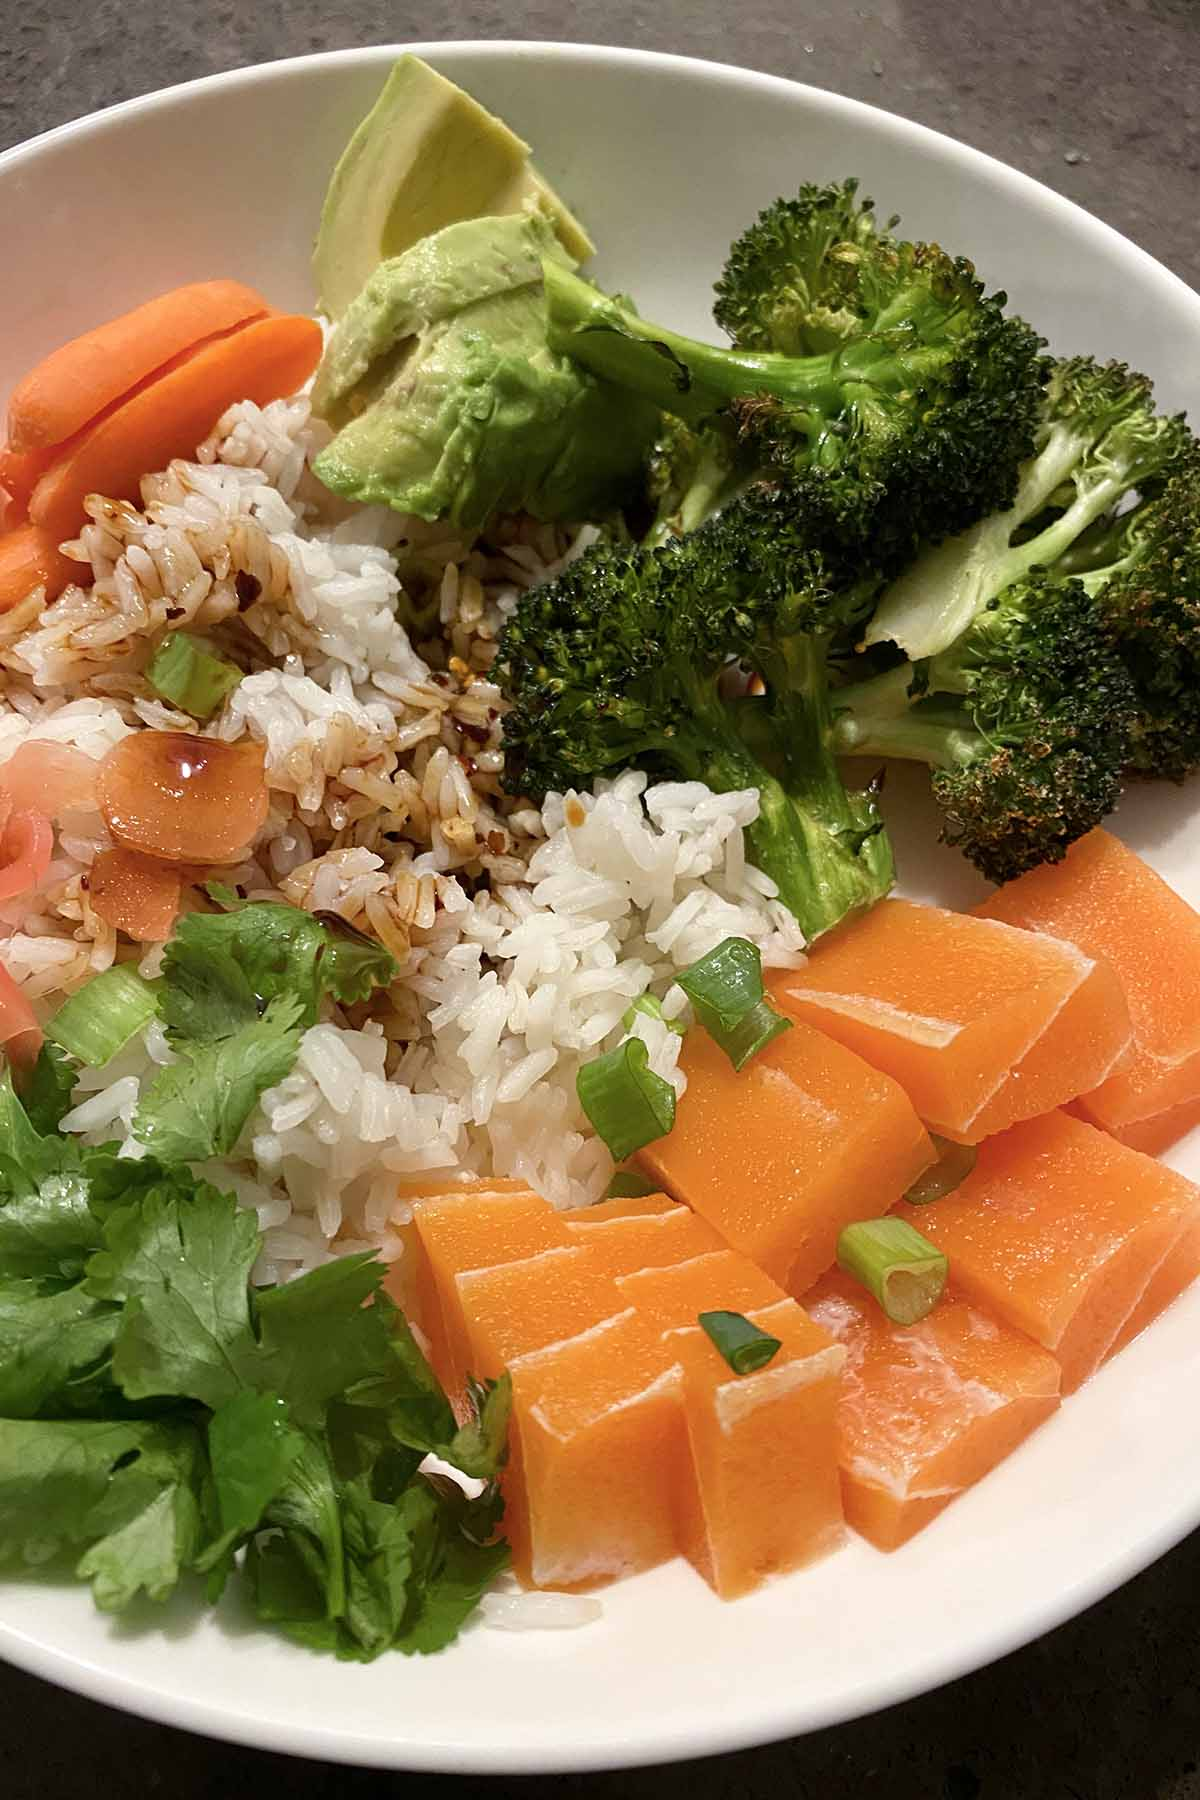 a rice bowl with vegetables, soy sauce, and Vegan Zeastar salmon